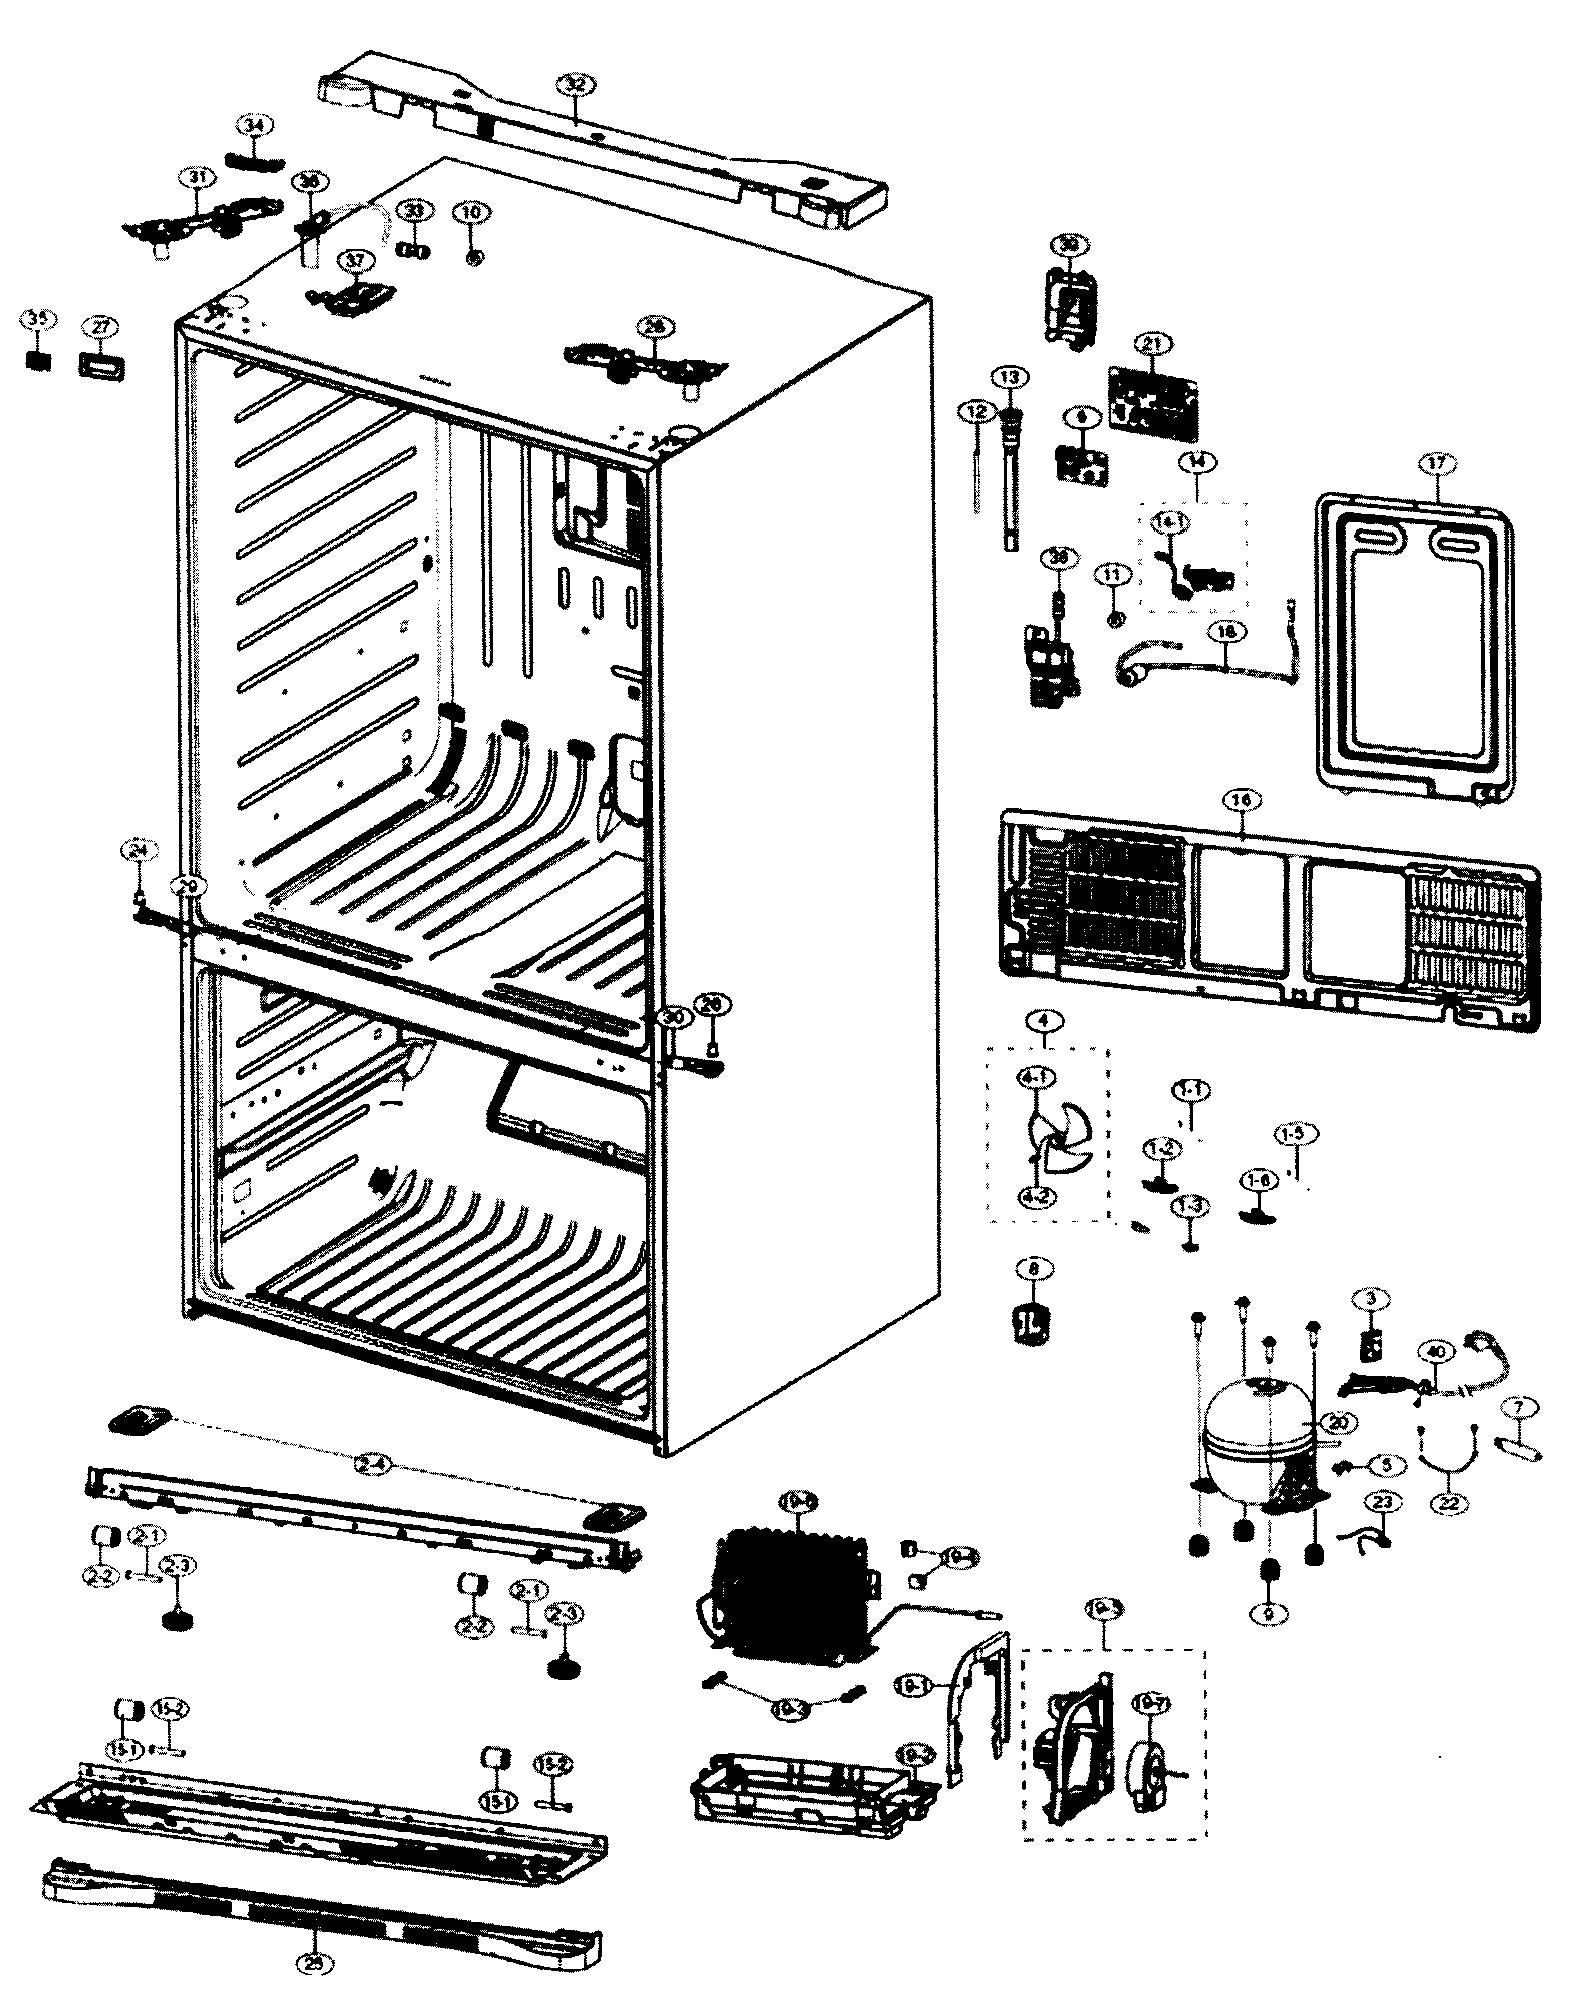 Samsung Refrigerator Parts List